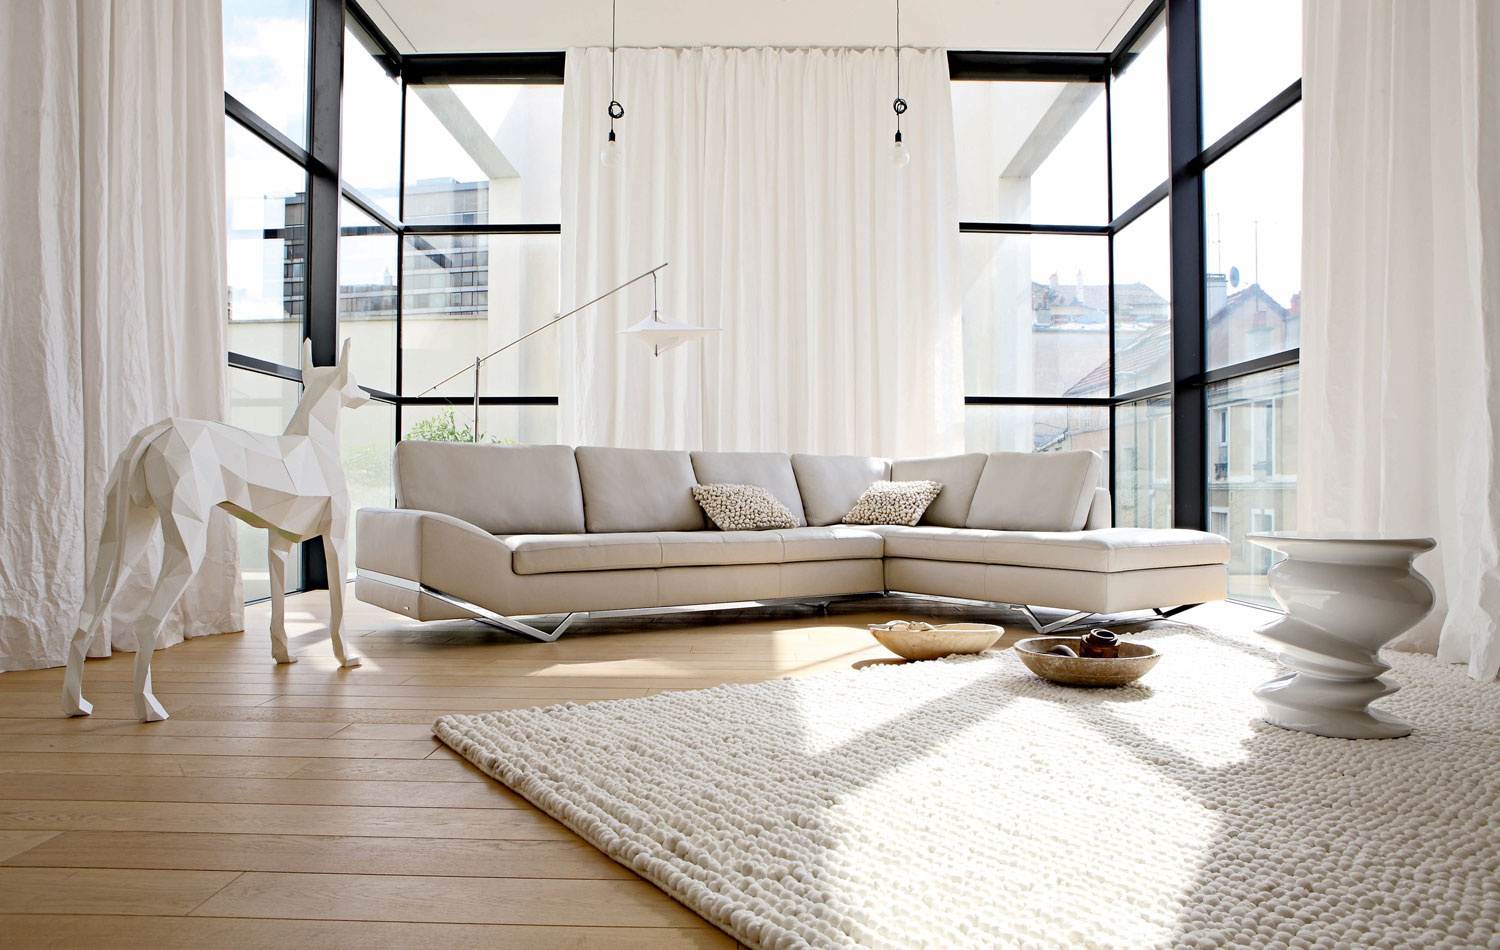 the sofa is modular intervalle roche bobois luxury. Black Bedroom Furniture Sets. Home Design Ideas